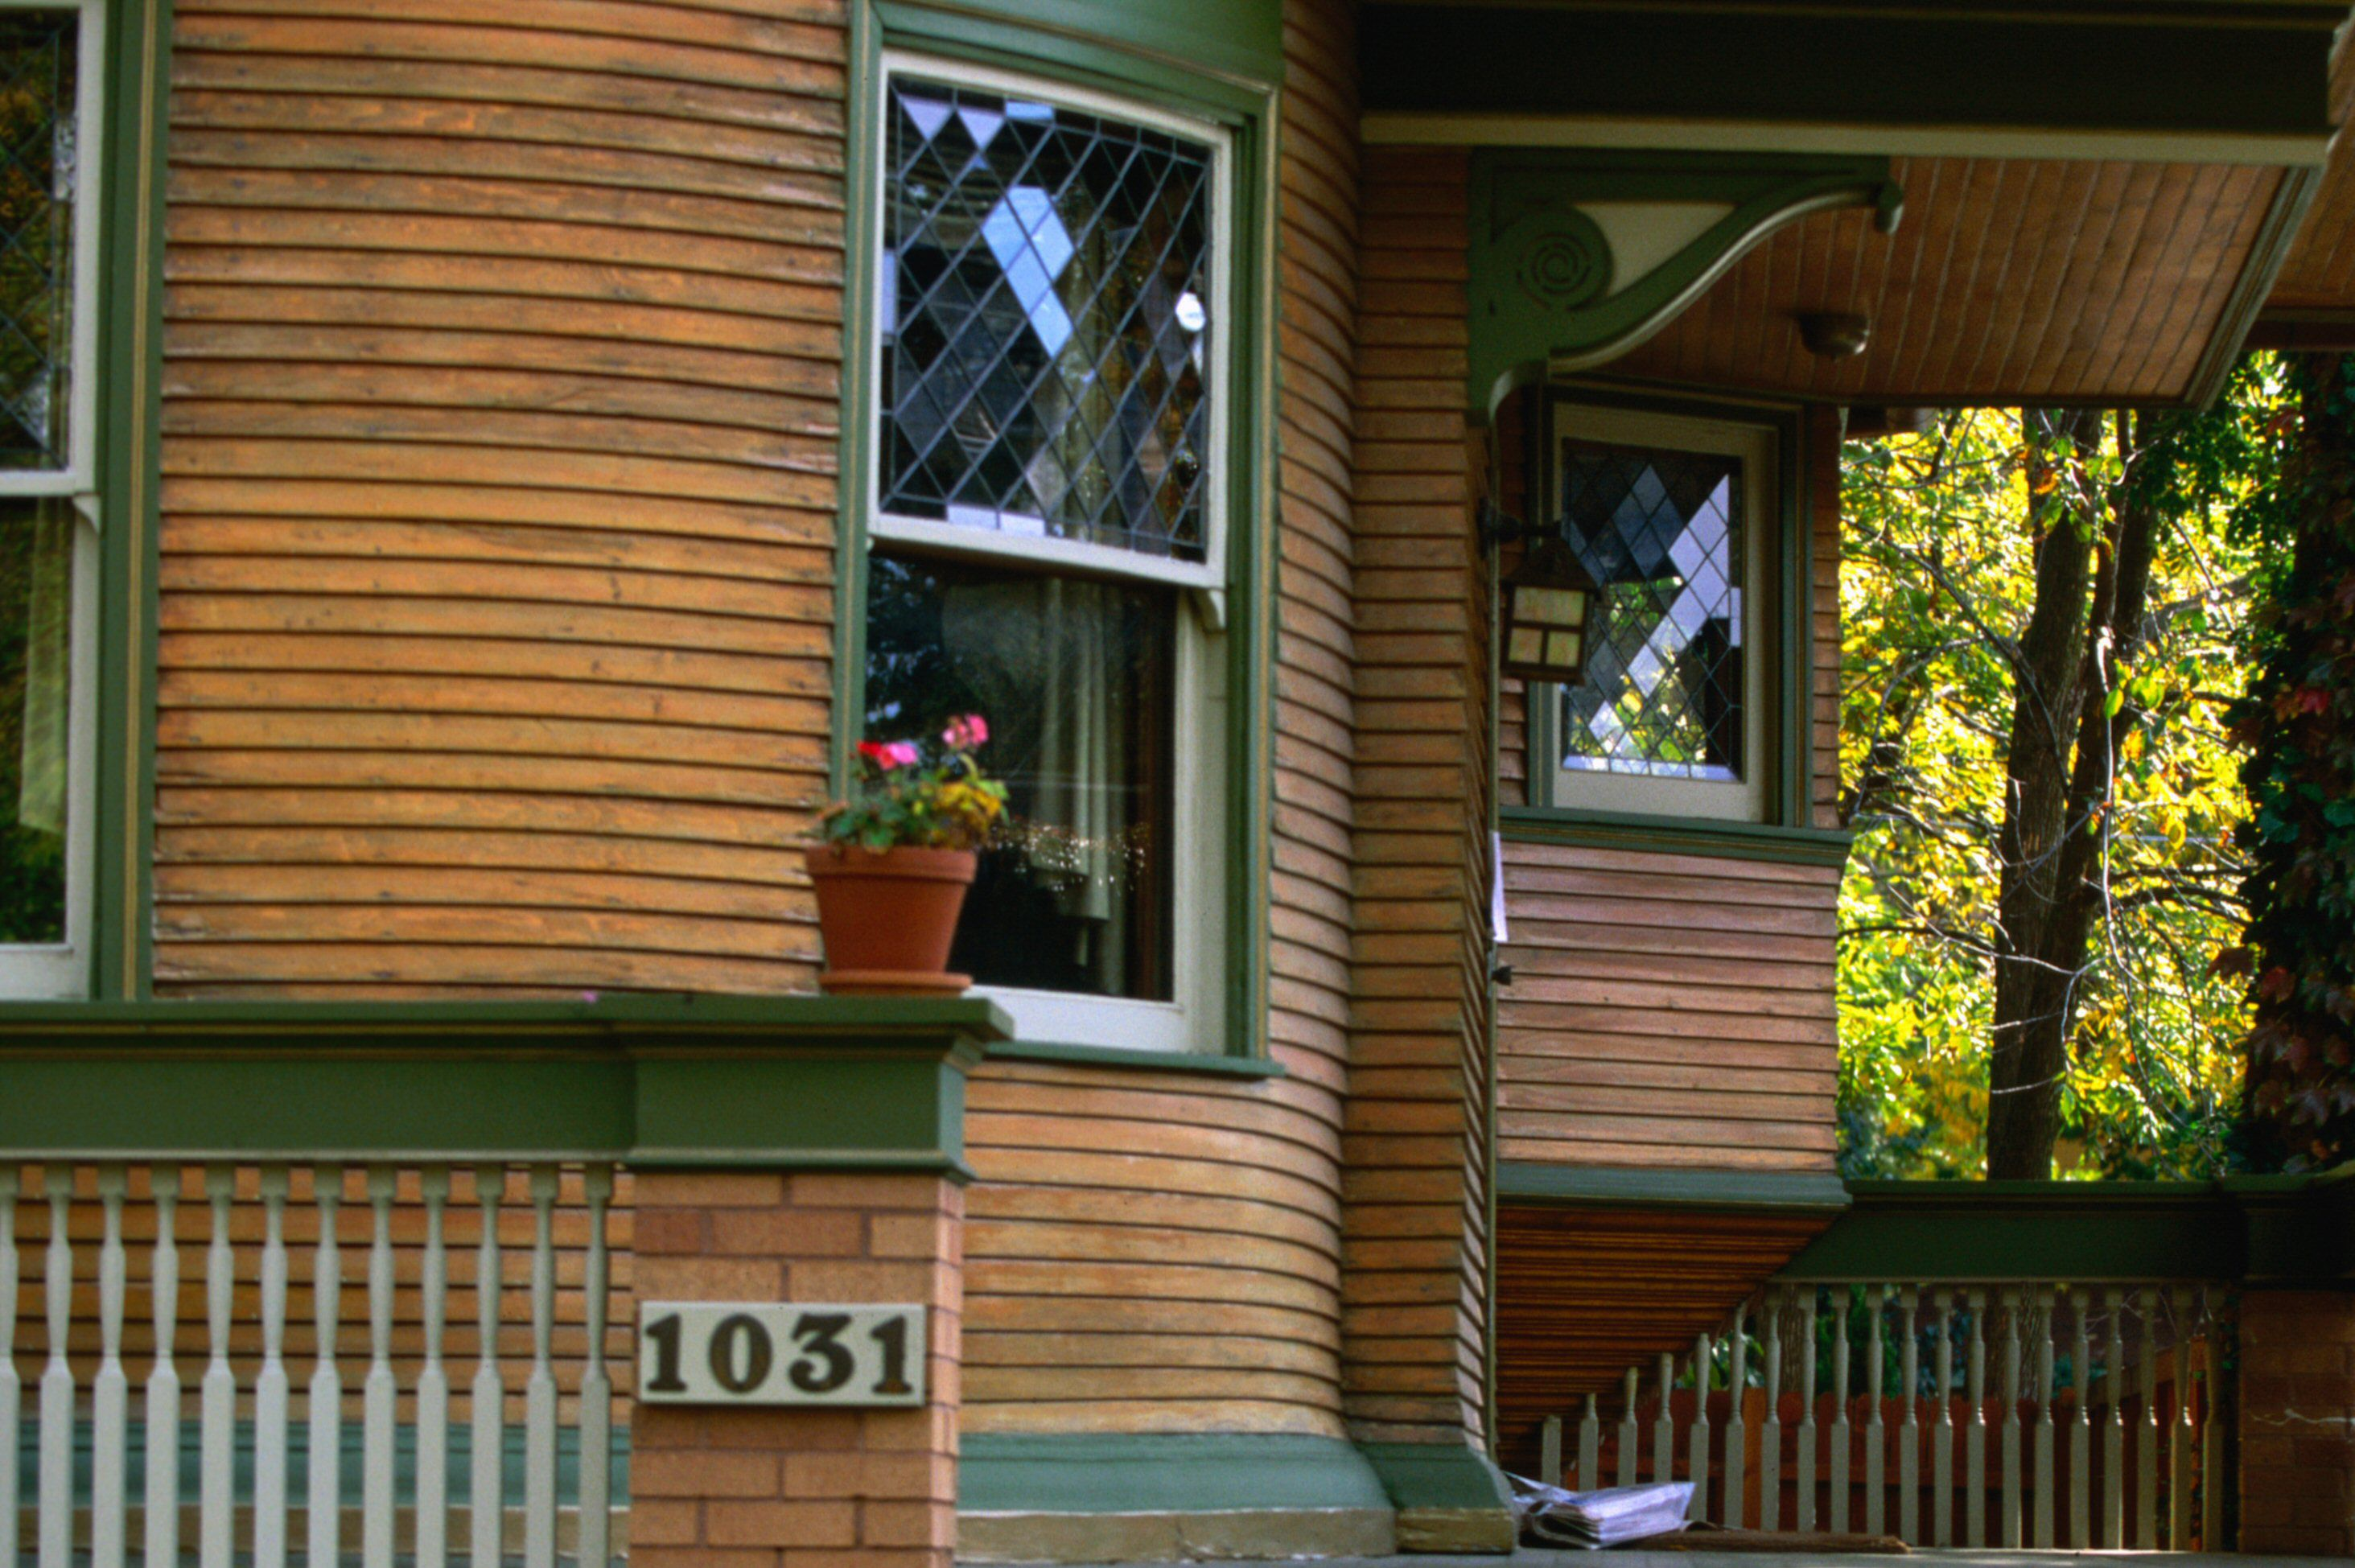 Detail of rounded house porch, natural wood siding with green trim, double hung leaded windows, decorative corbels